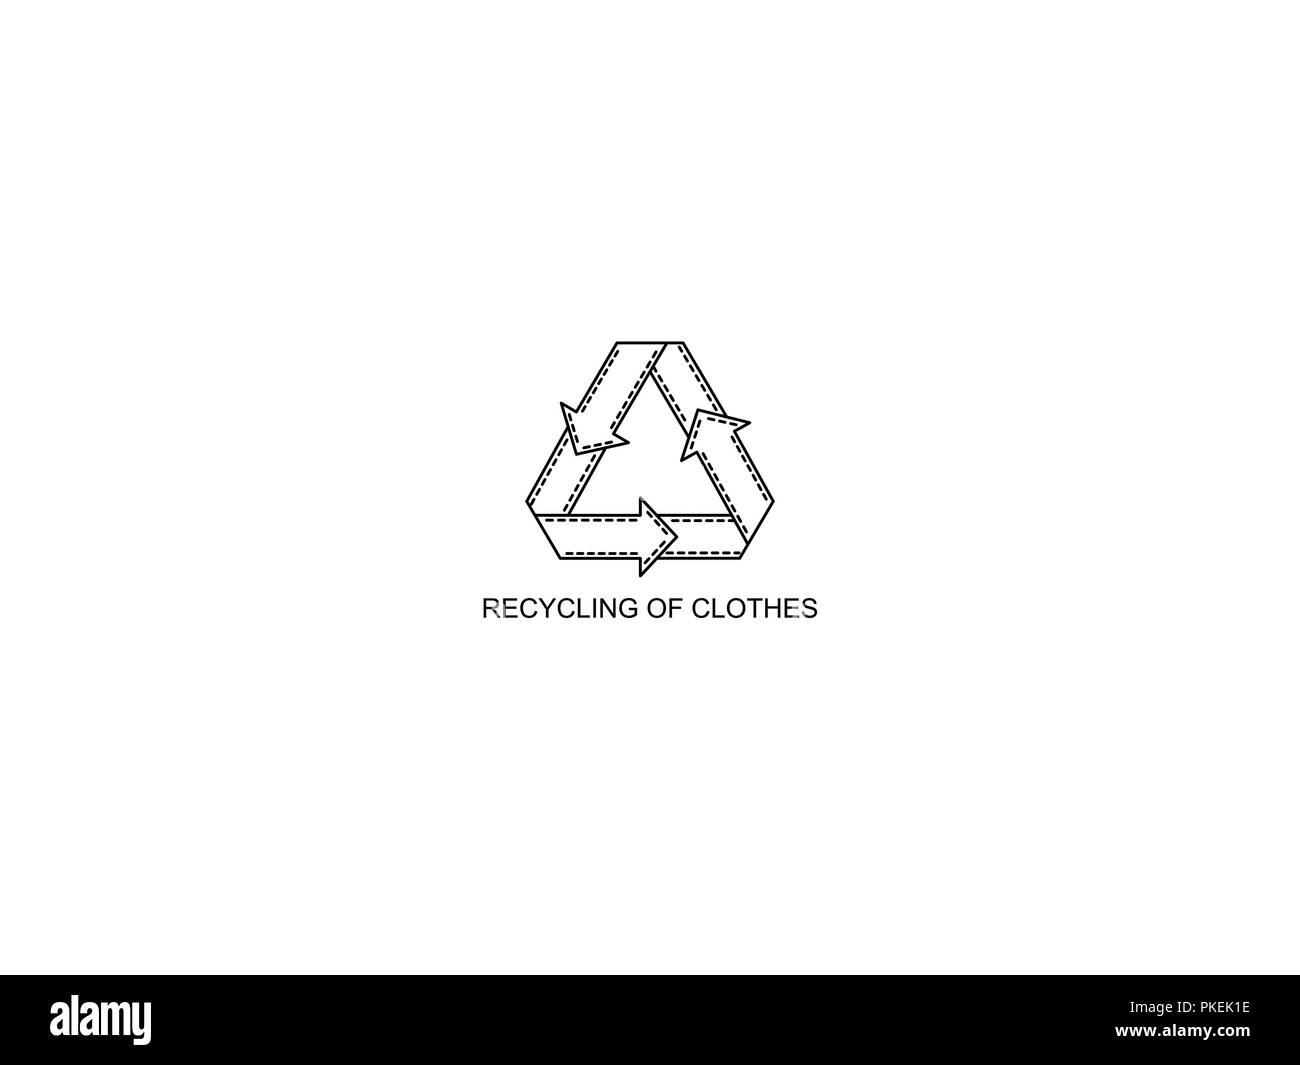 recycling of clothes Monochrome icon. Secondary processing of clothing. - Stock Image